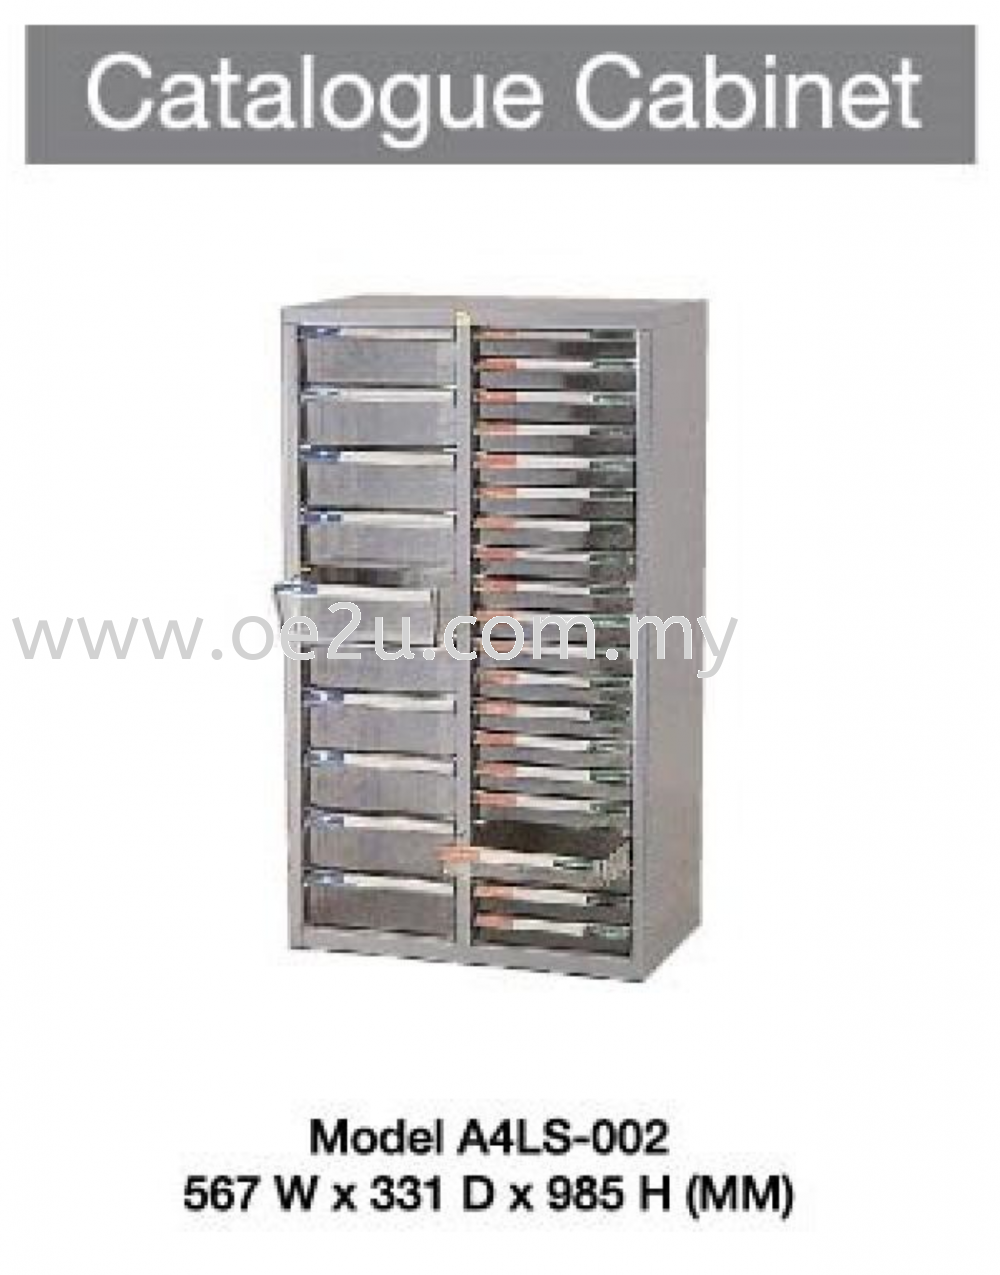 Catalogue Cabinet (2 Section)